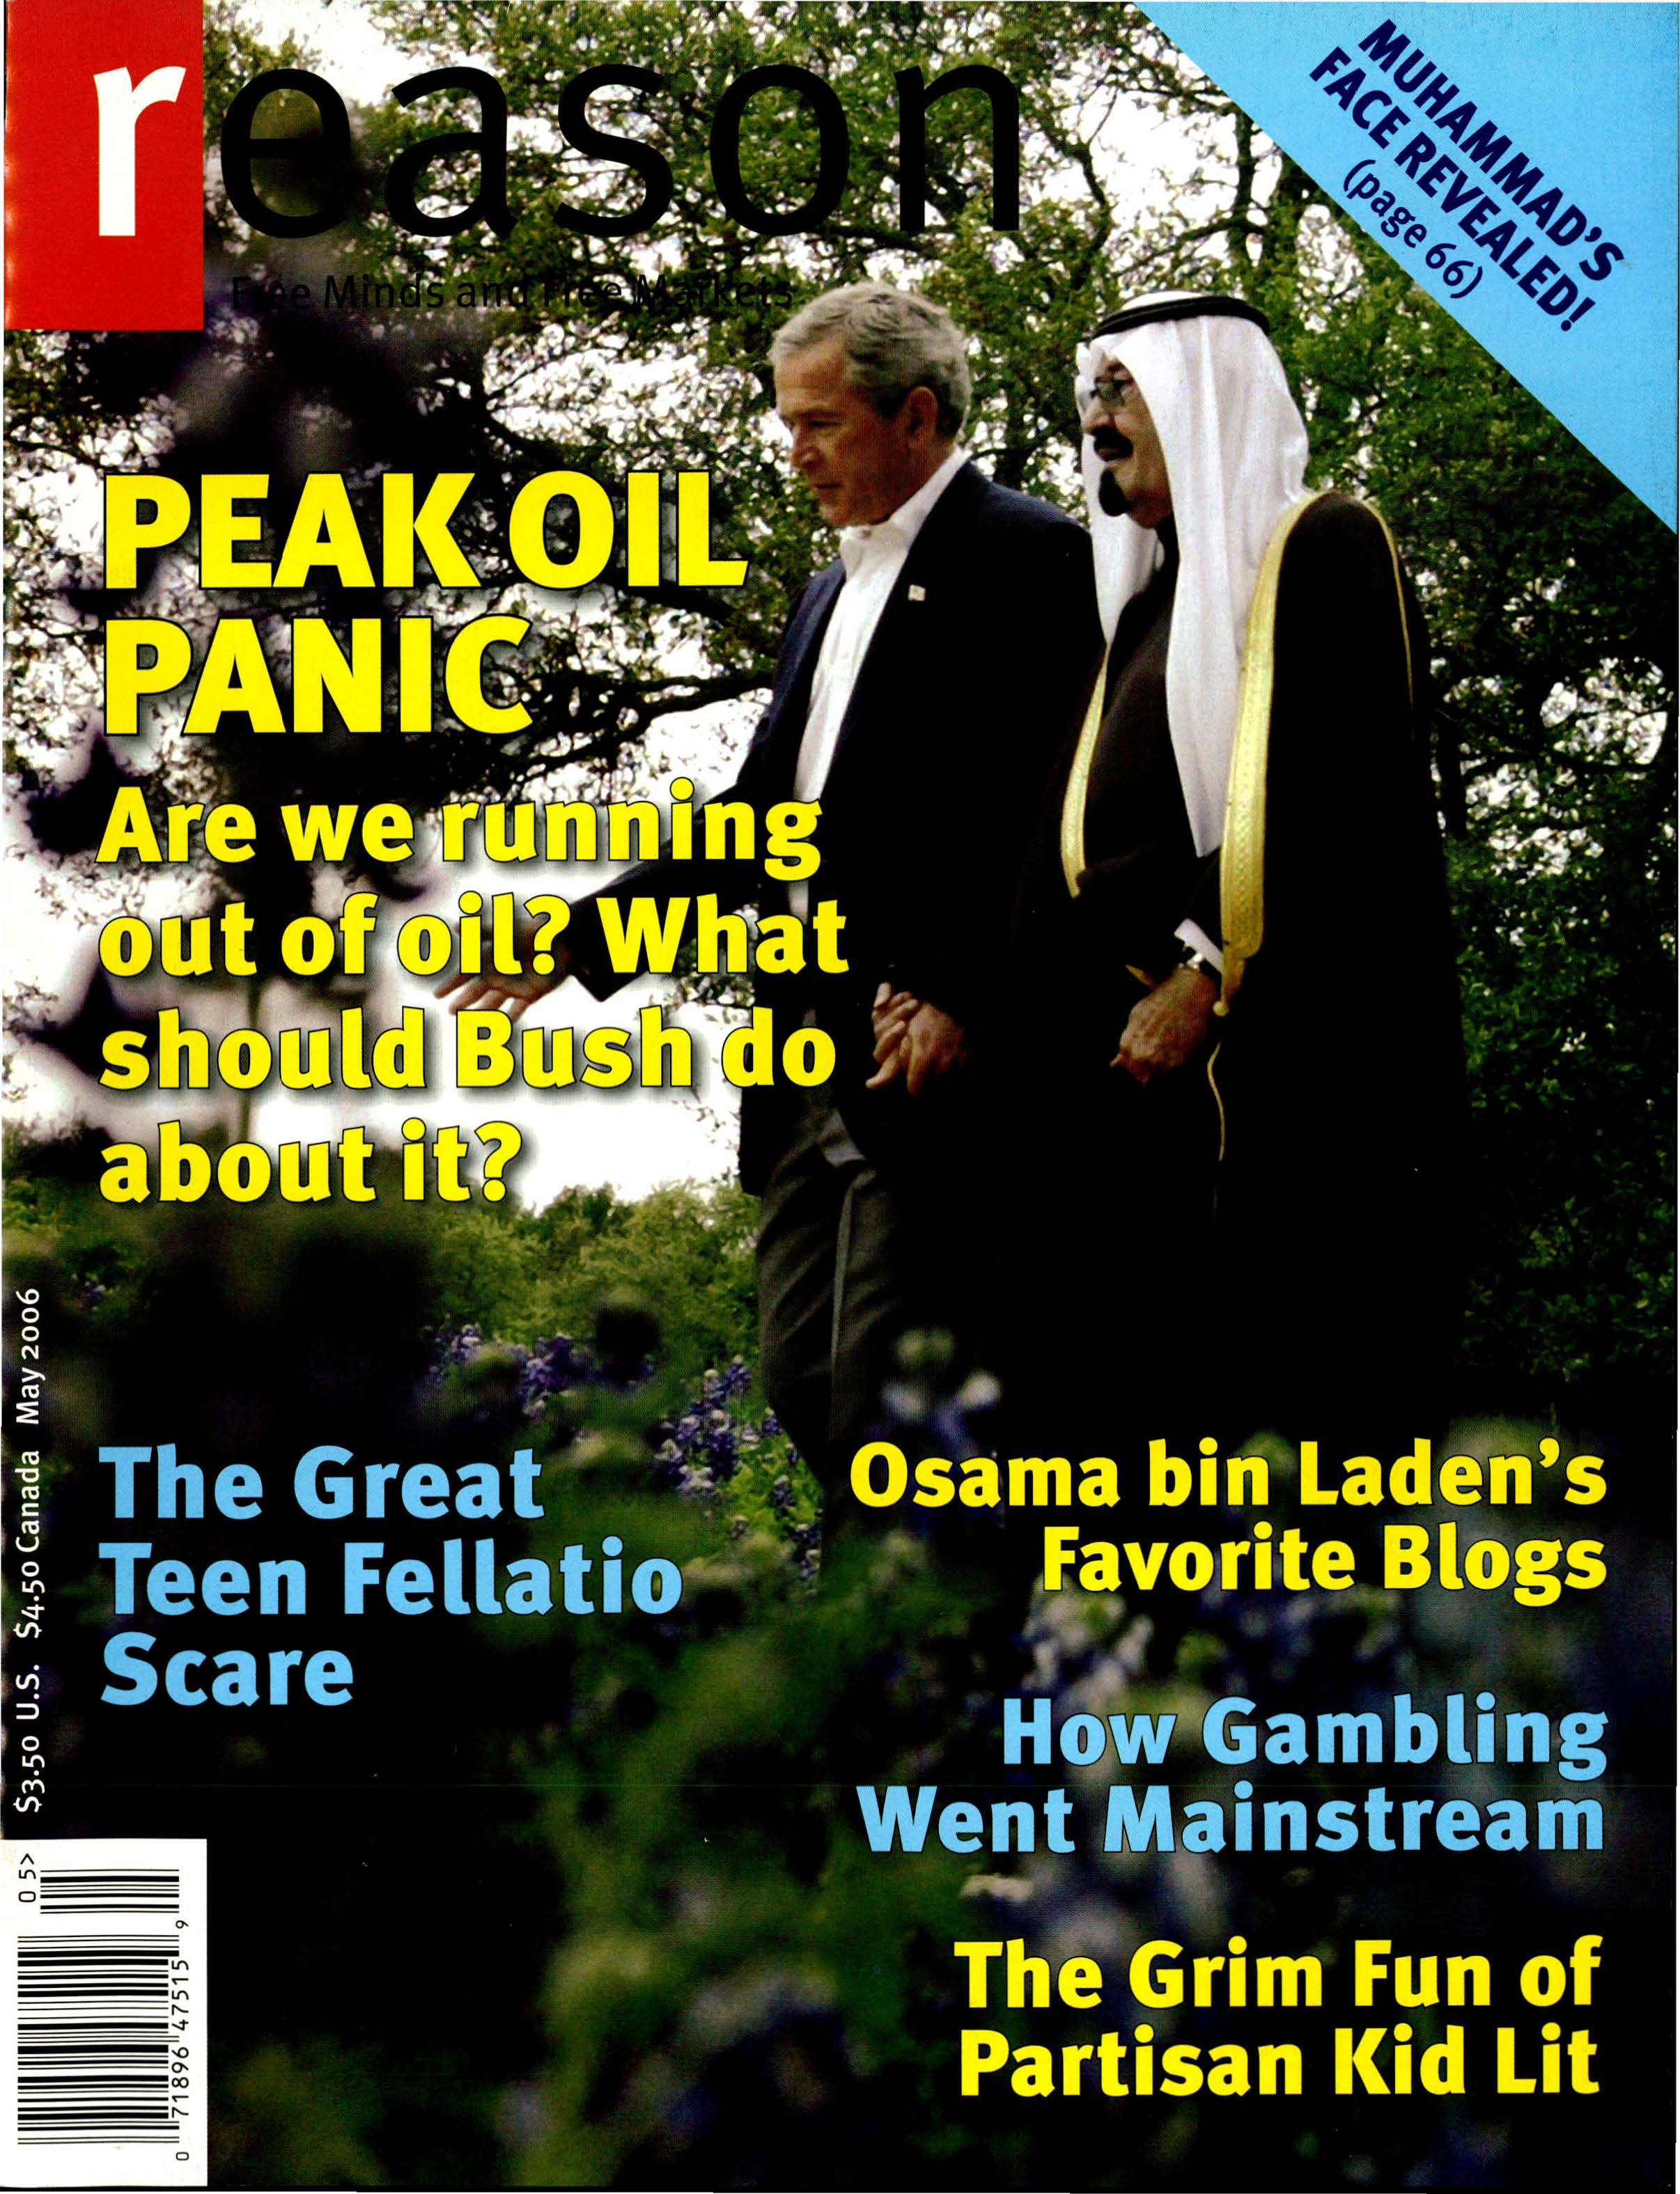 Reason Magazine, May 2006 cover image